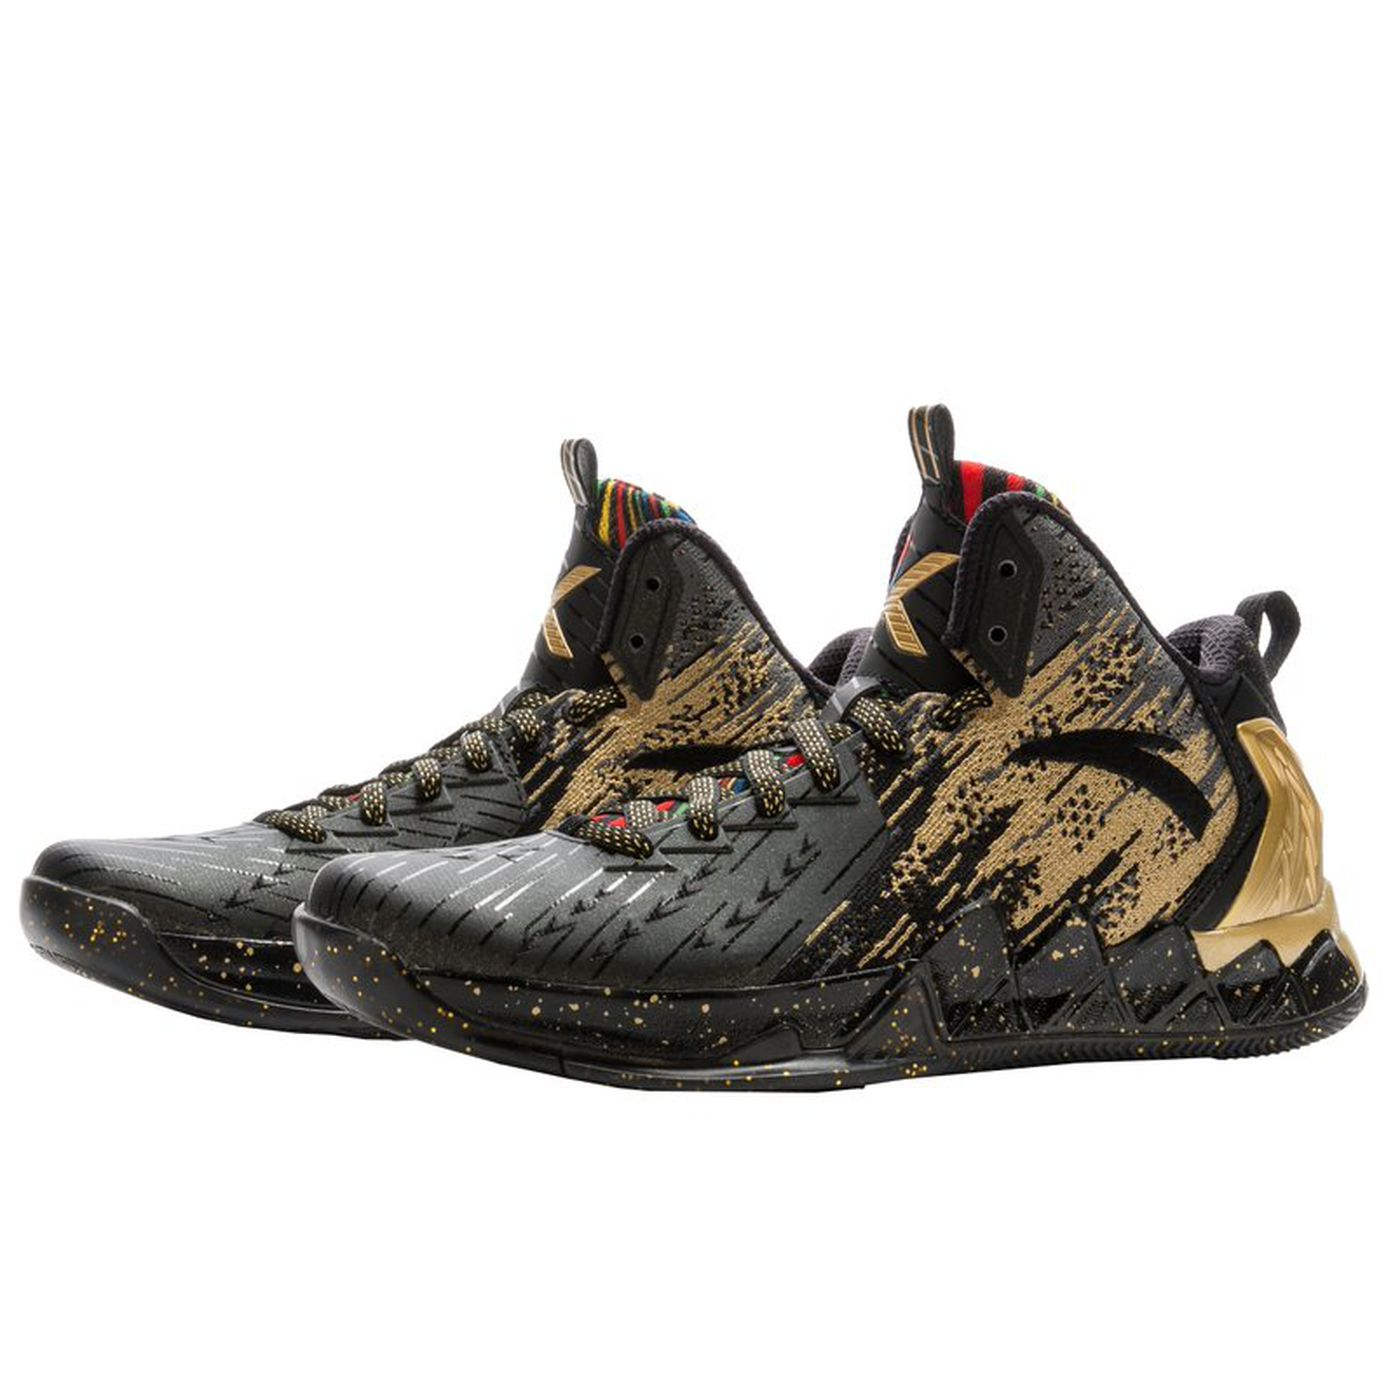 Klay Thompson s new shoes are so ugly 399227336e